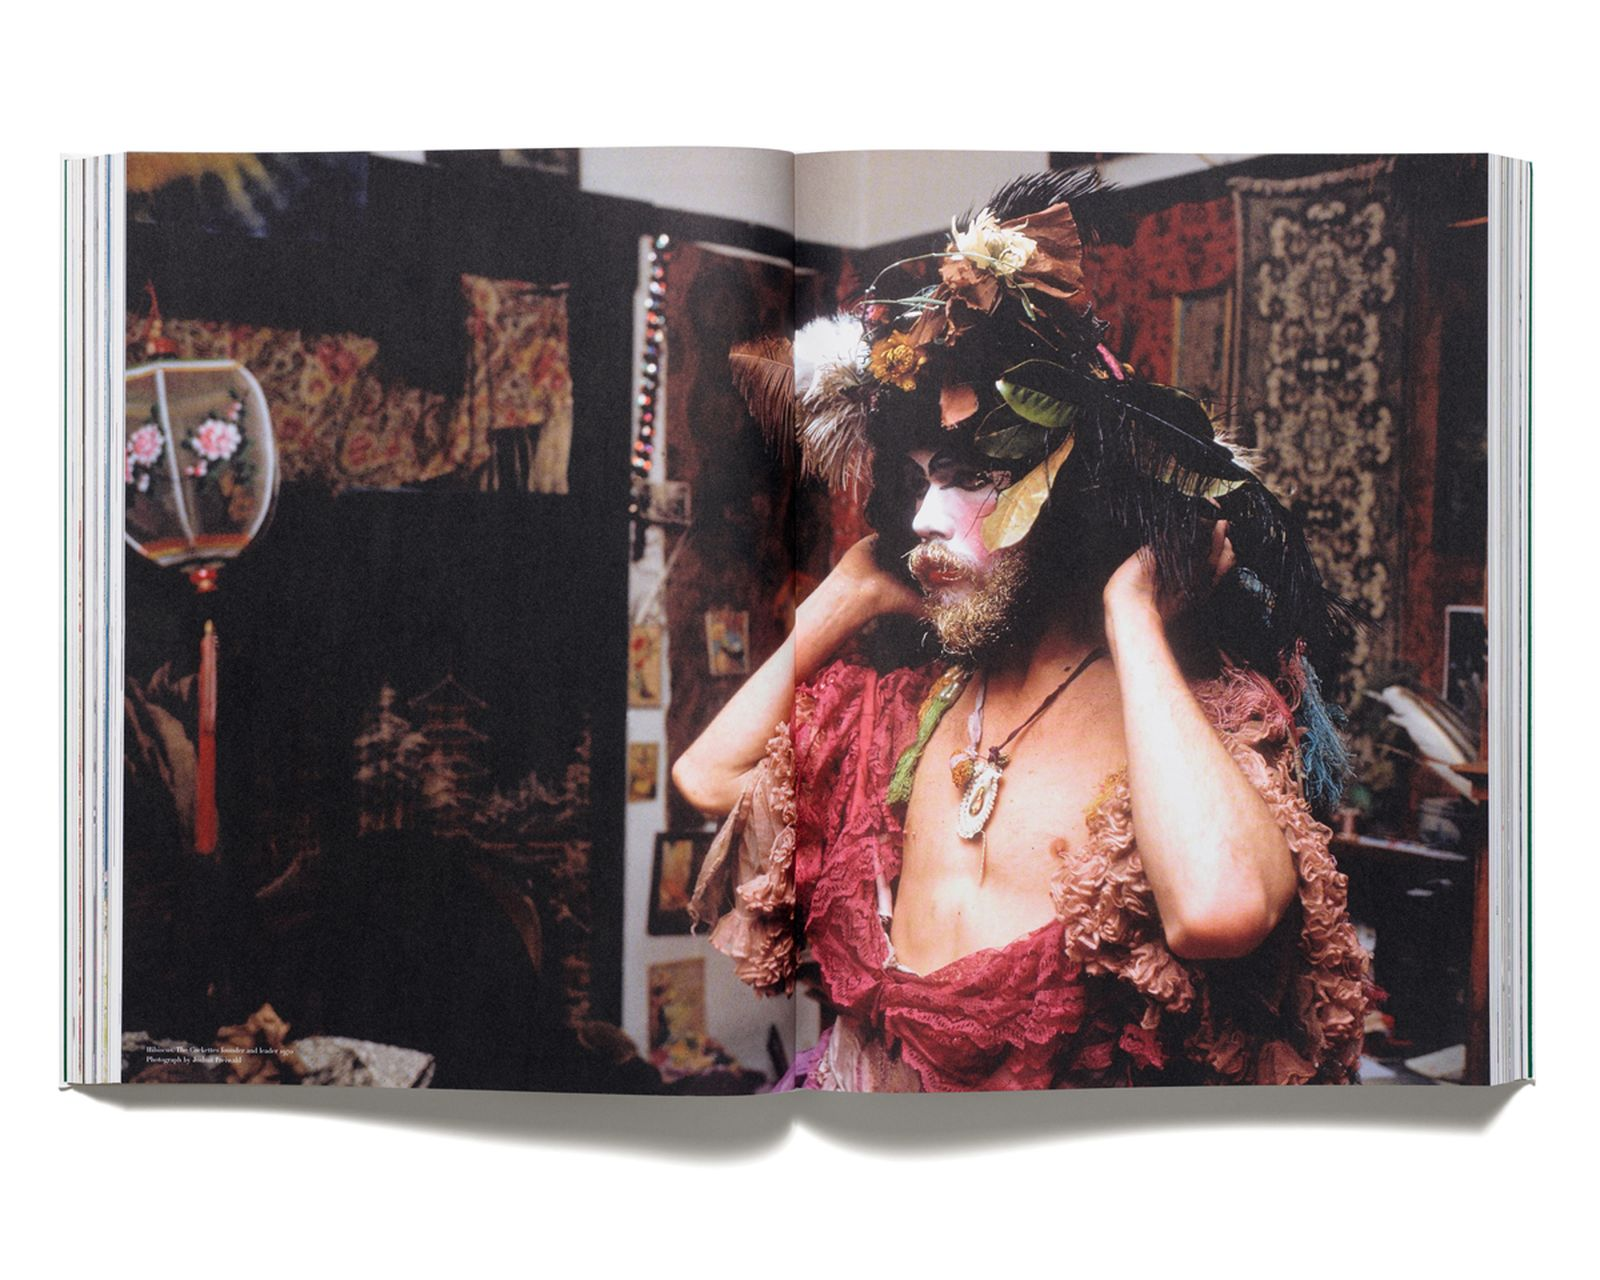 BEARDED LADIES - Hibiscus of The Cockettes photographed by Joshua Freiwald in 1970. From 'Acne Paper' issue 6, 2008.